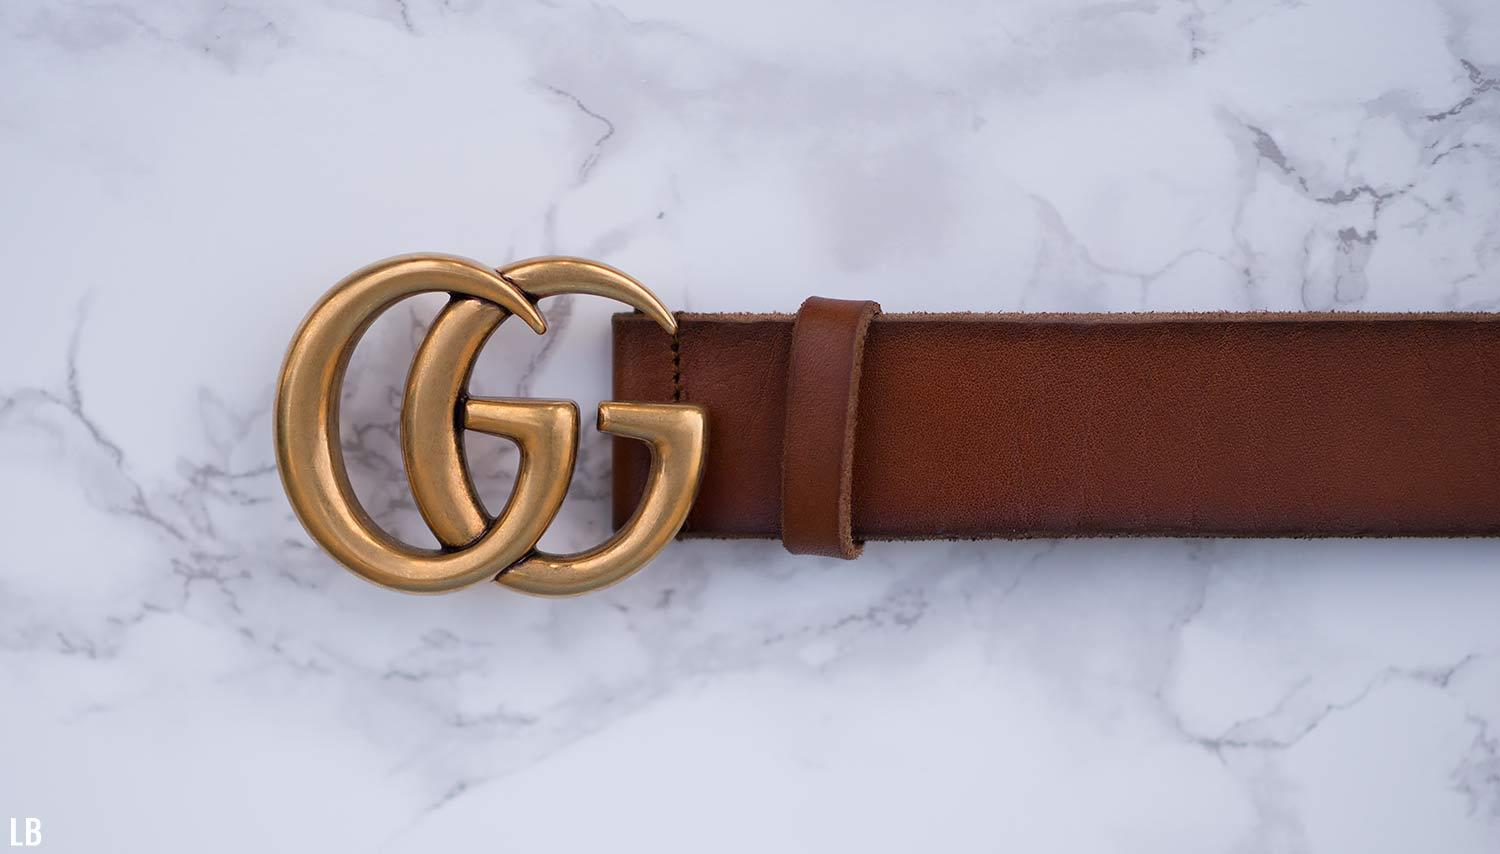 dc8b954022d Buy this Gucci GG Belt in the UK here   in the US here